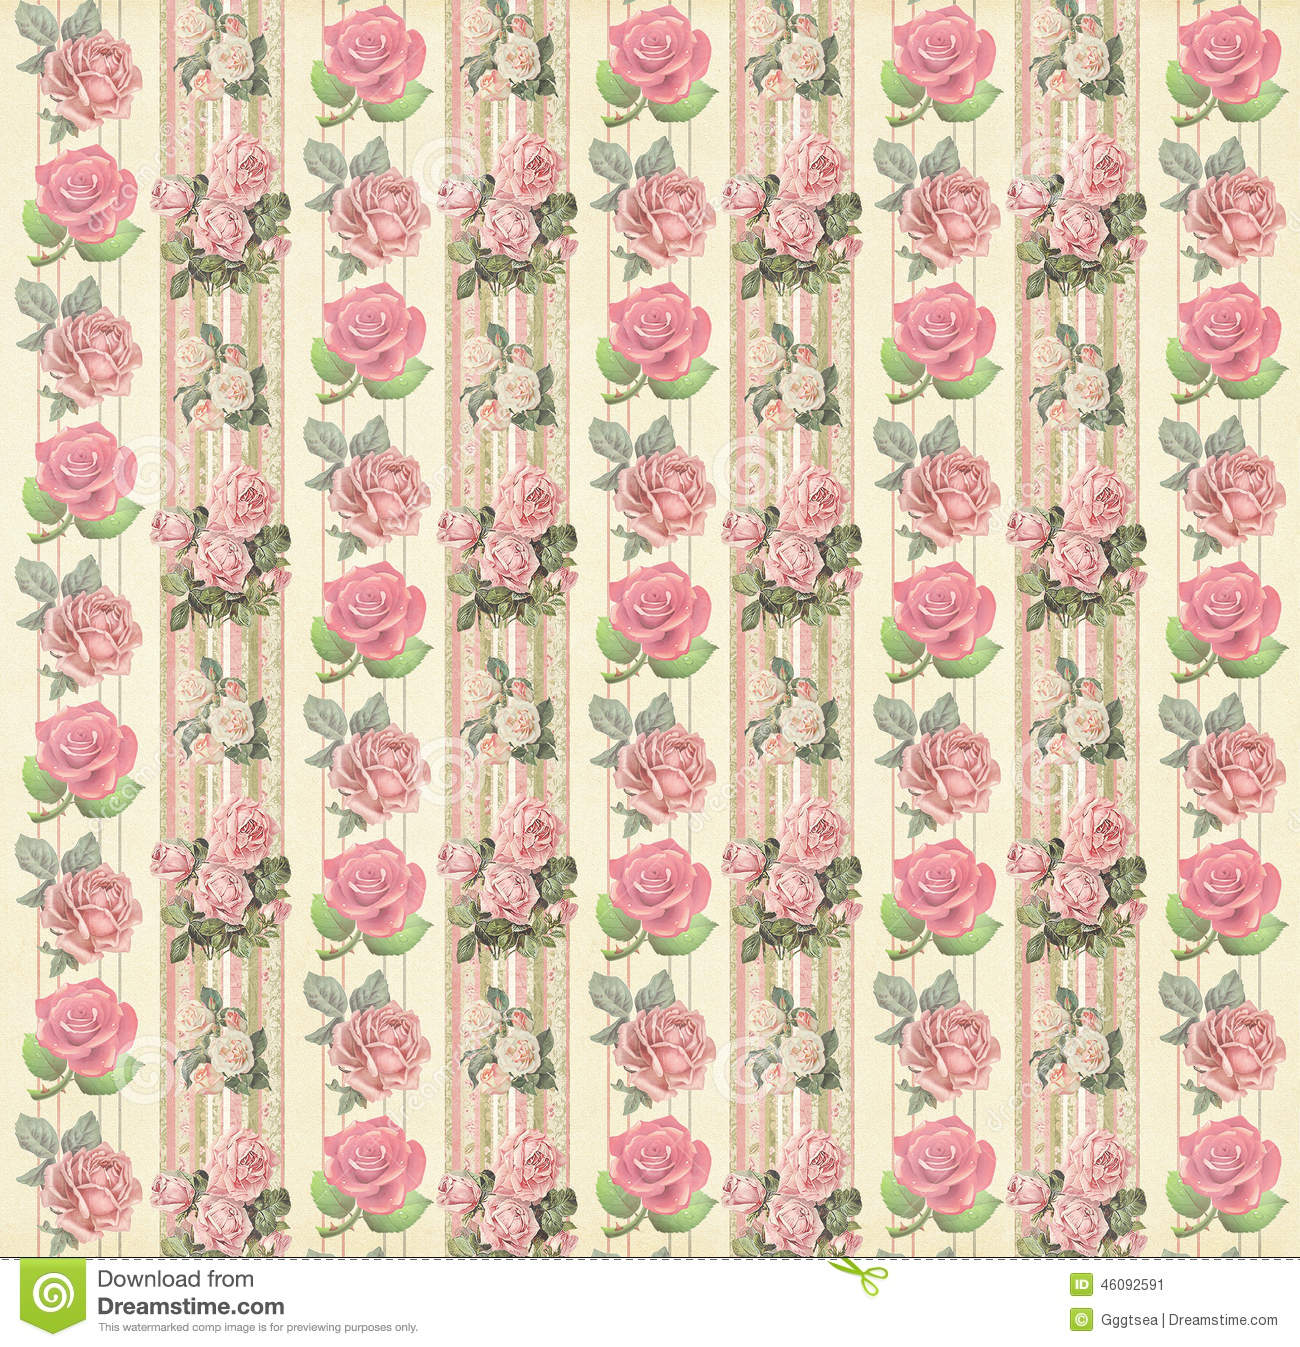 Vintage Floral Wallpaper Stock Image Image Of Design 46092591